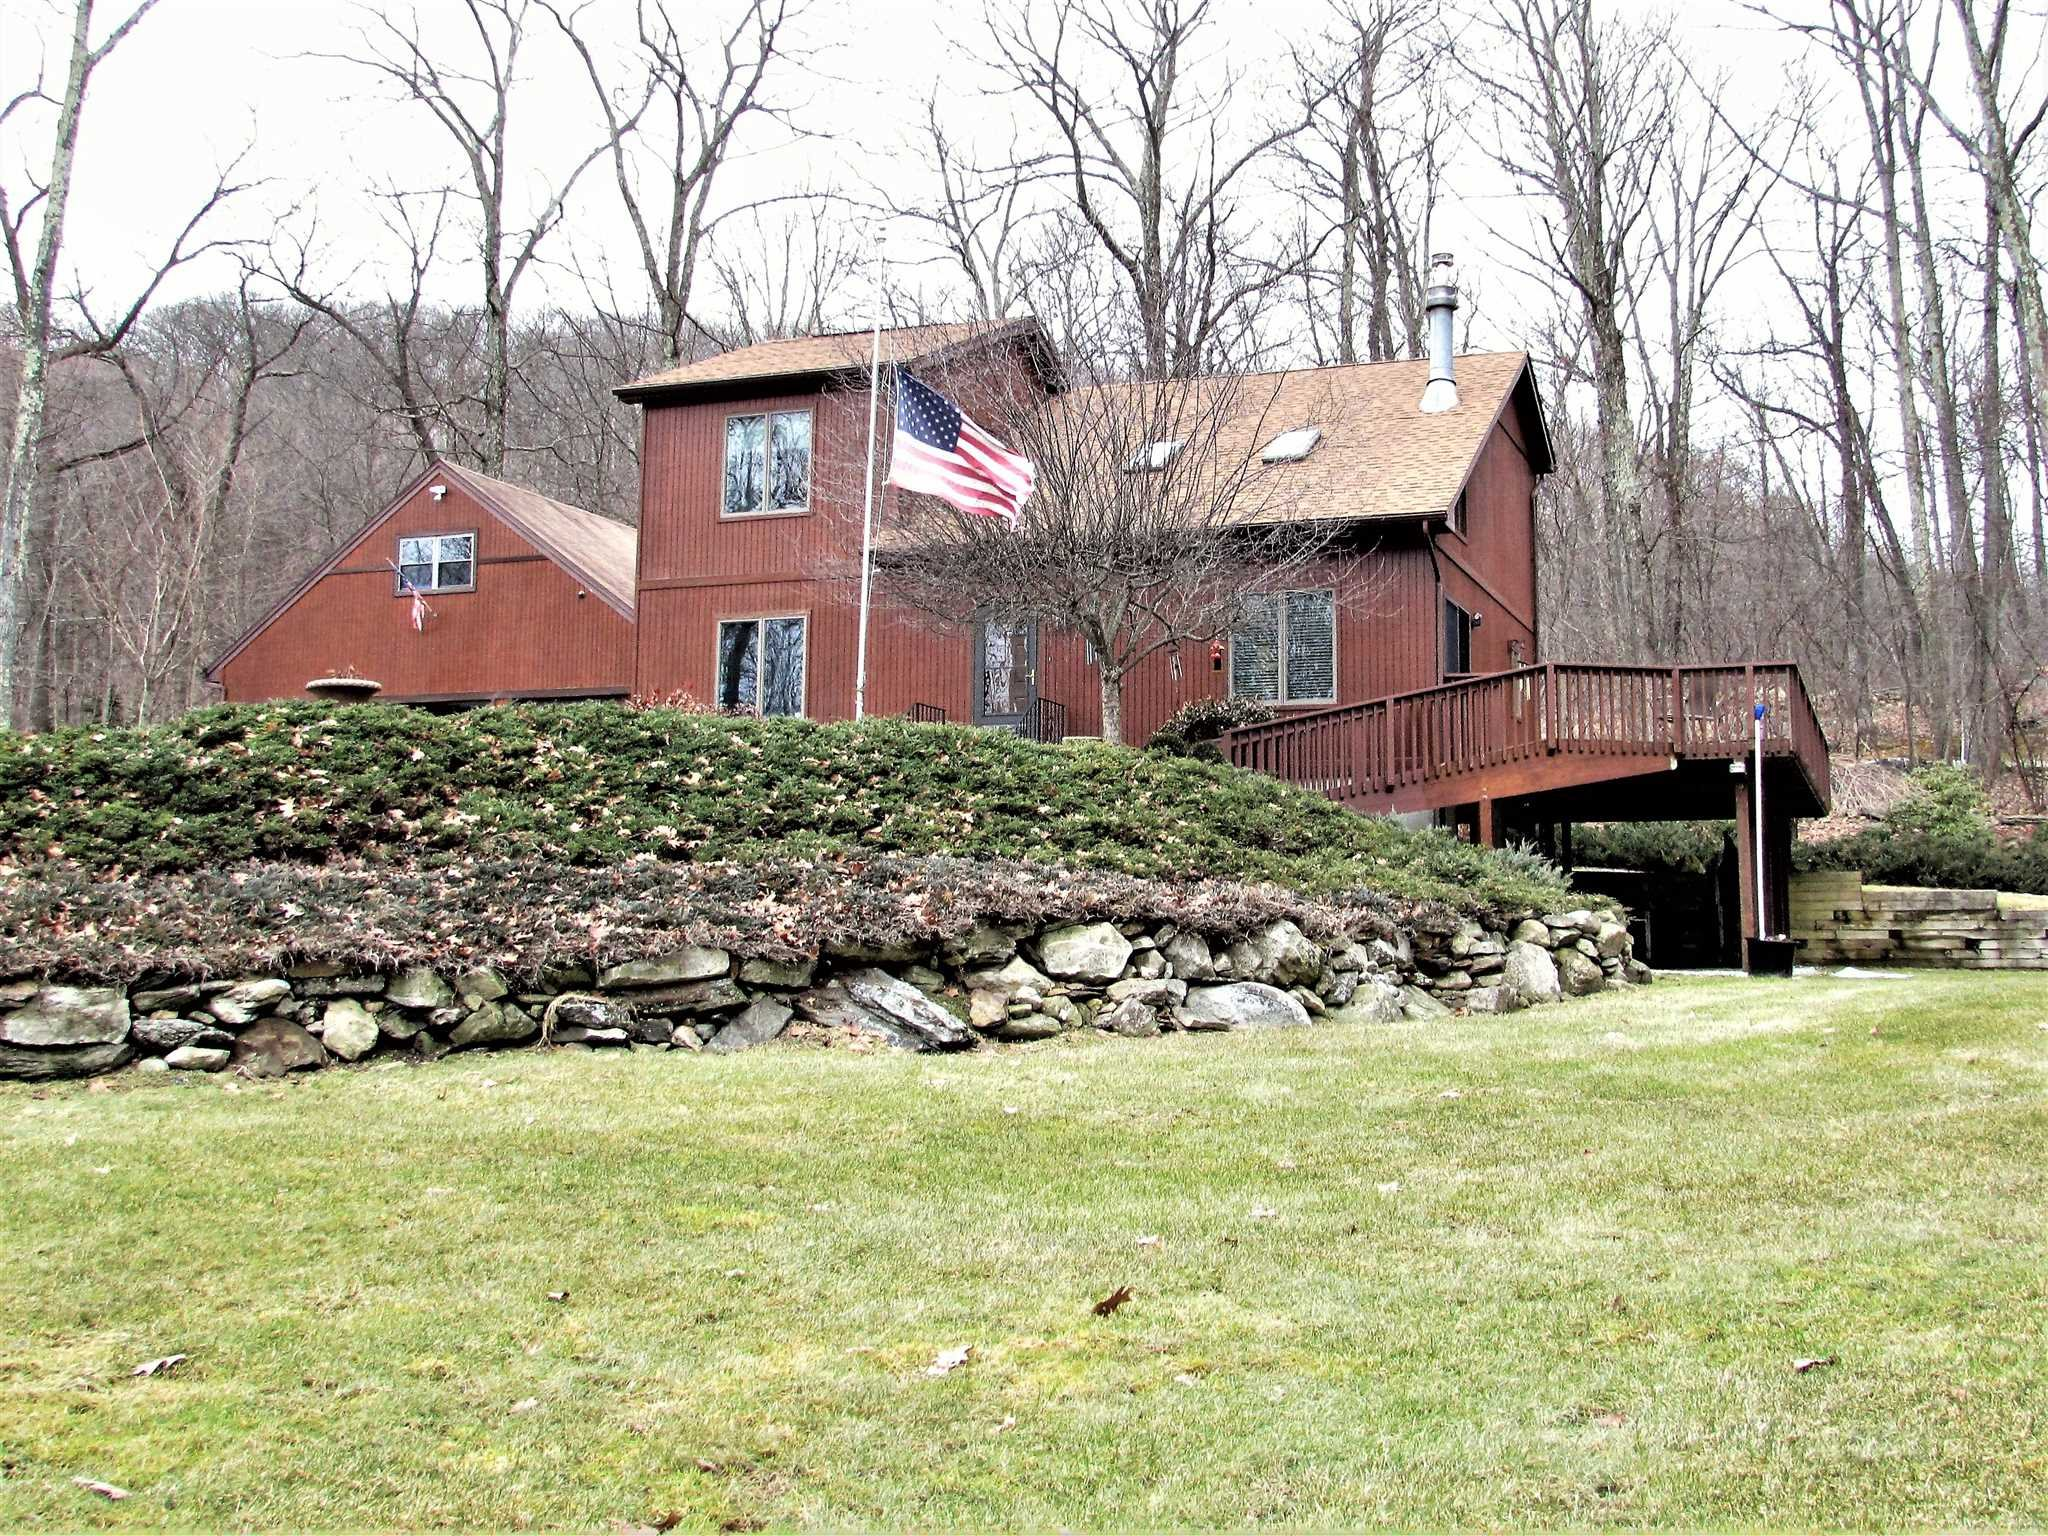 Single Family Home for Sale at 3485 ROUTE 55 3485 ROUTE 55 Pawling, New York 12564 United States